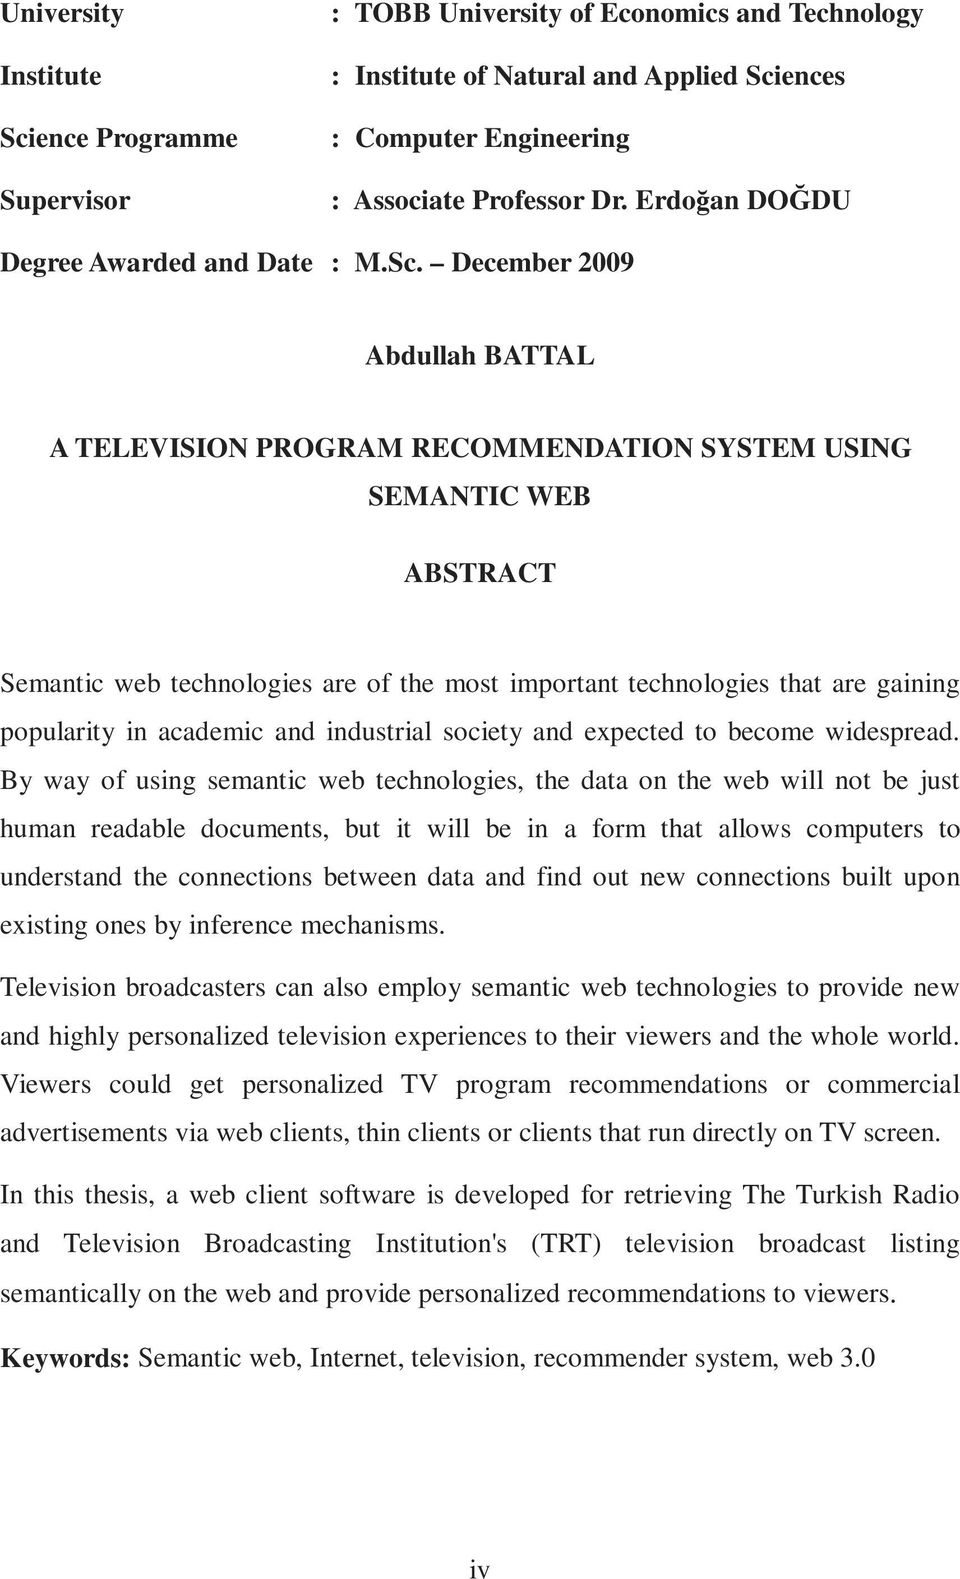 December 2009 Abdullah BATTAL A TELEVISION PROGRAM RECOMMENDATION SYSTEM USING SEMANTIC WEB ABSTRACT Semantic web technologies are of the most important technologies that are gaining popularity in